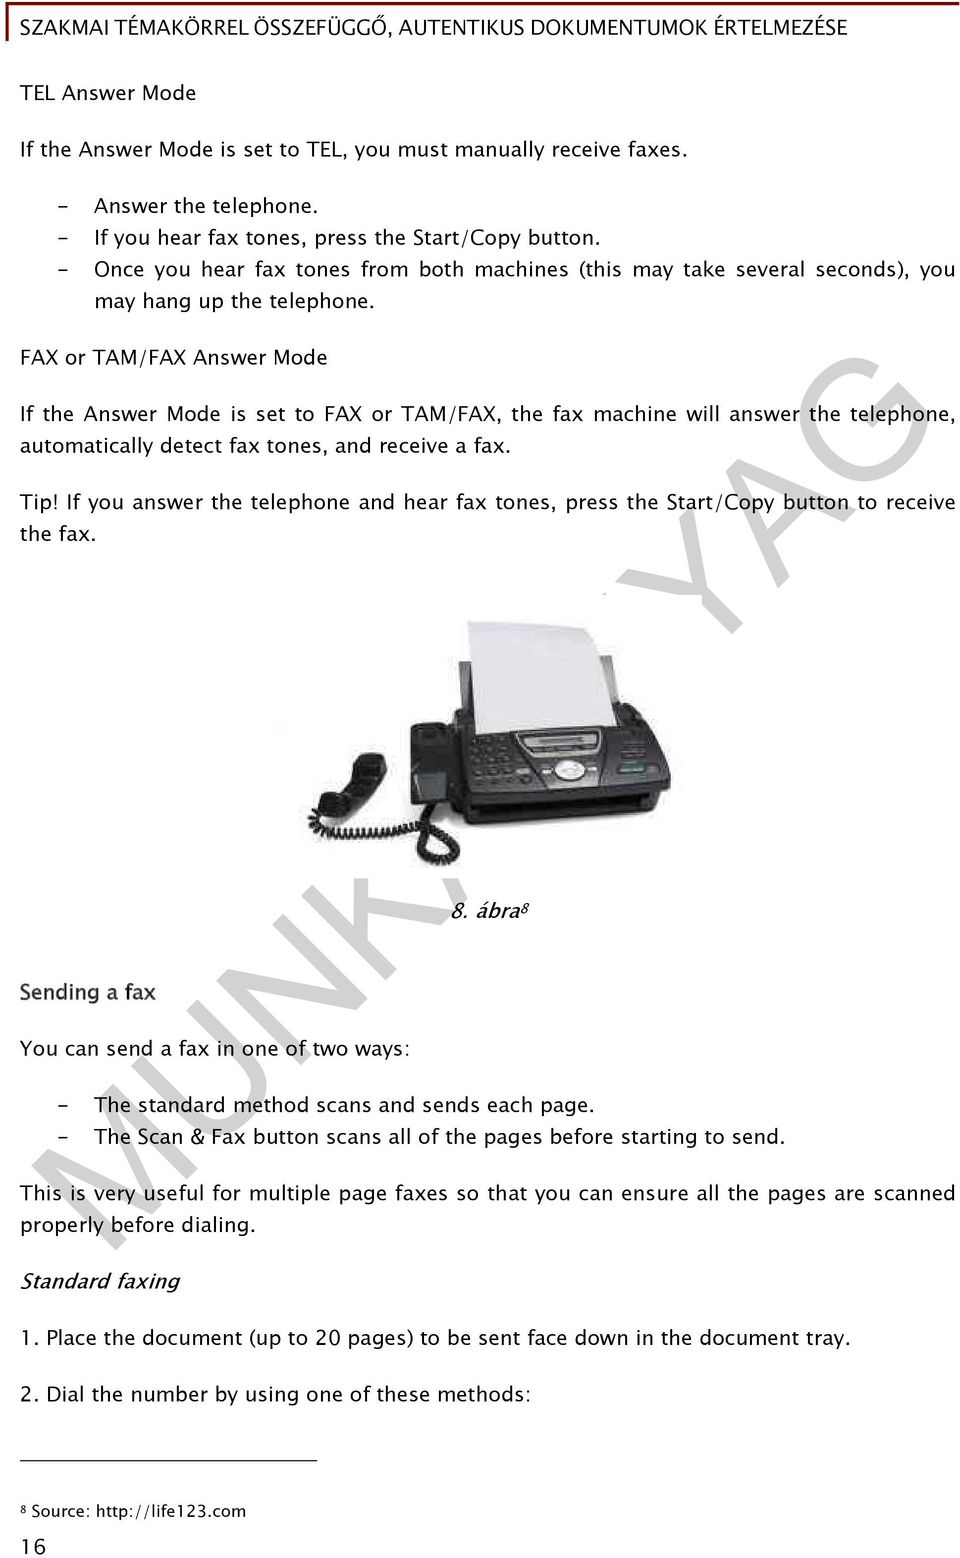 FAX or TAM/FAX Answer Mode If the Answer Mode is set to FAX or TAM/FAX, the fax machine will answer the telephone, automatically detect fax tones, and receive a fax. Tip!